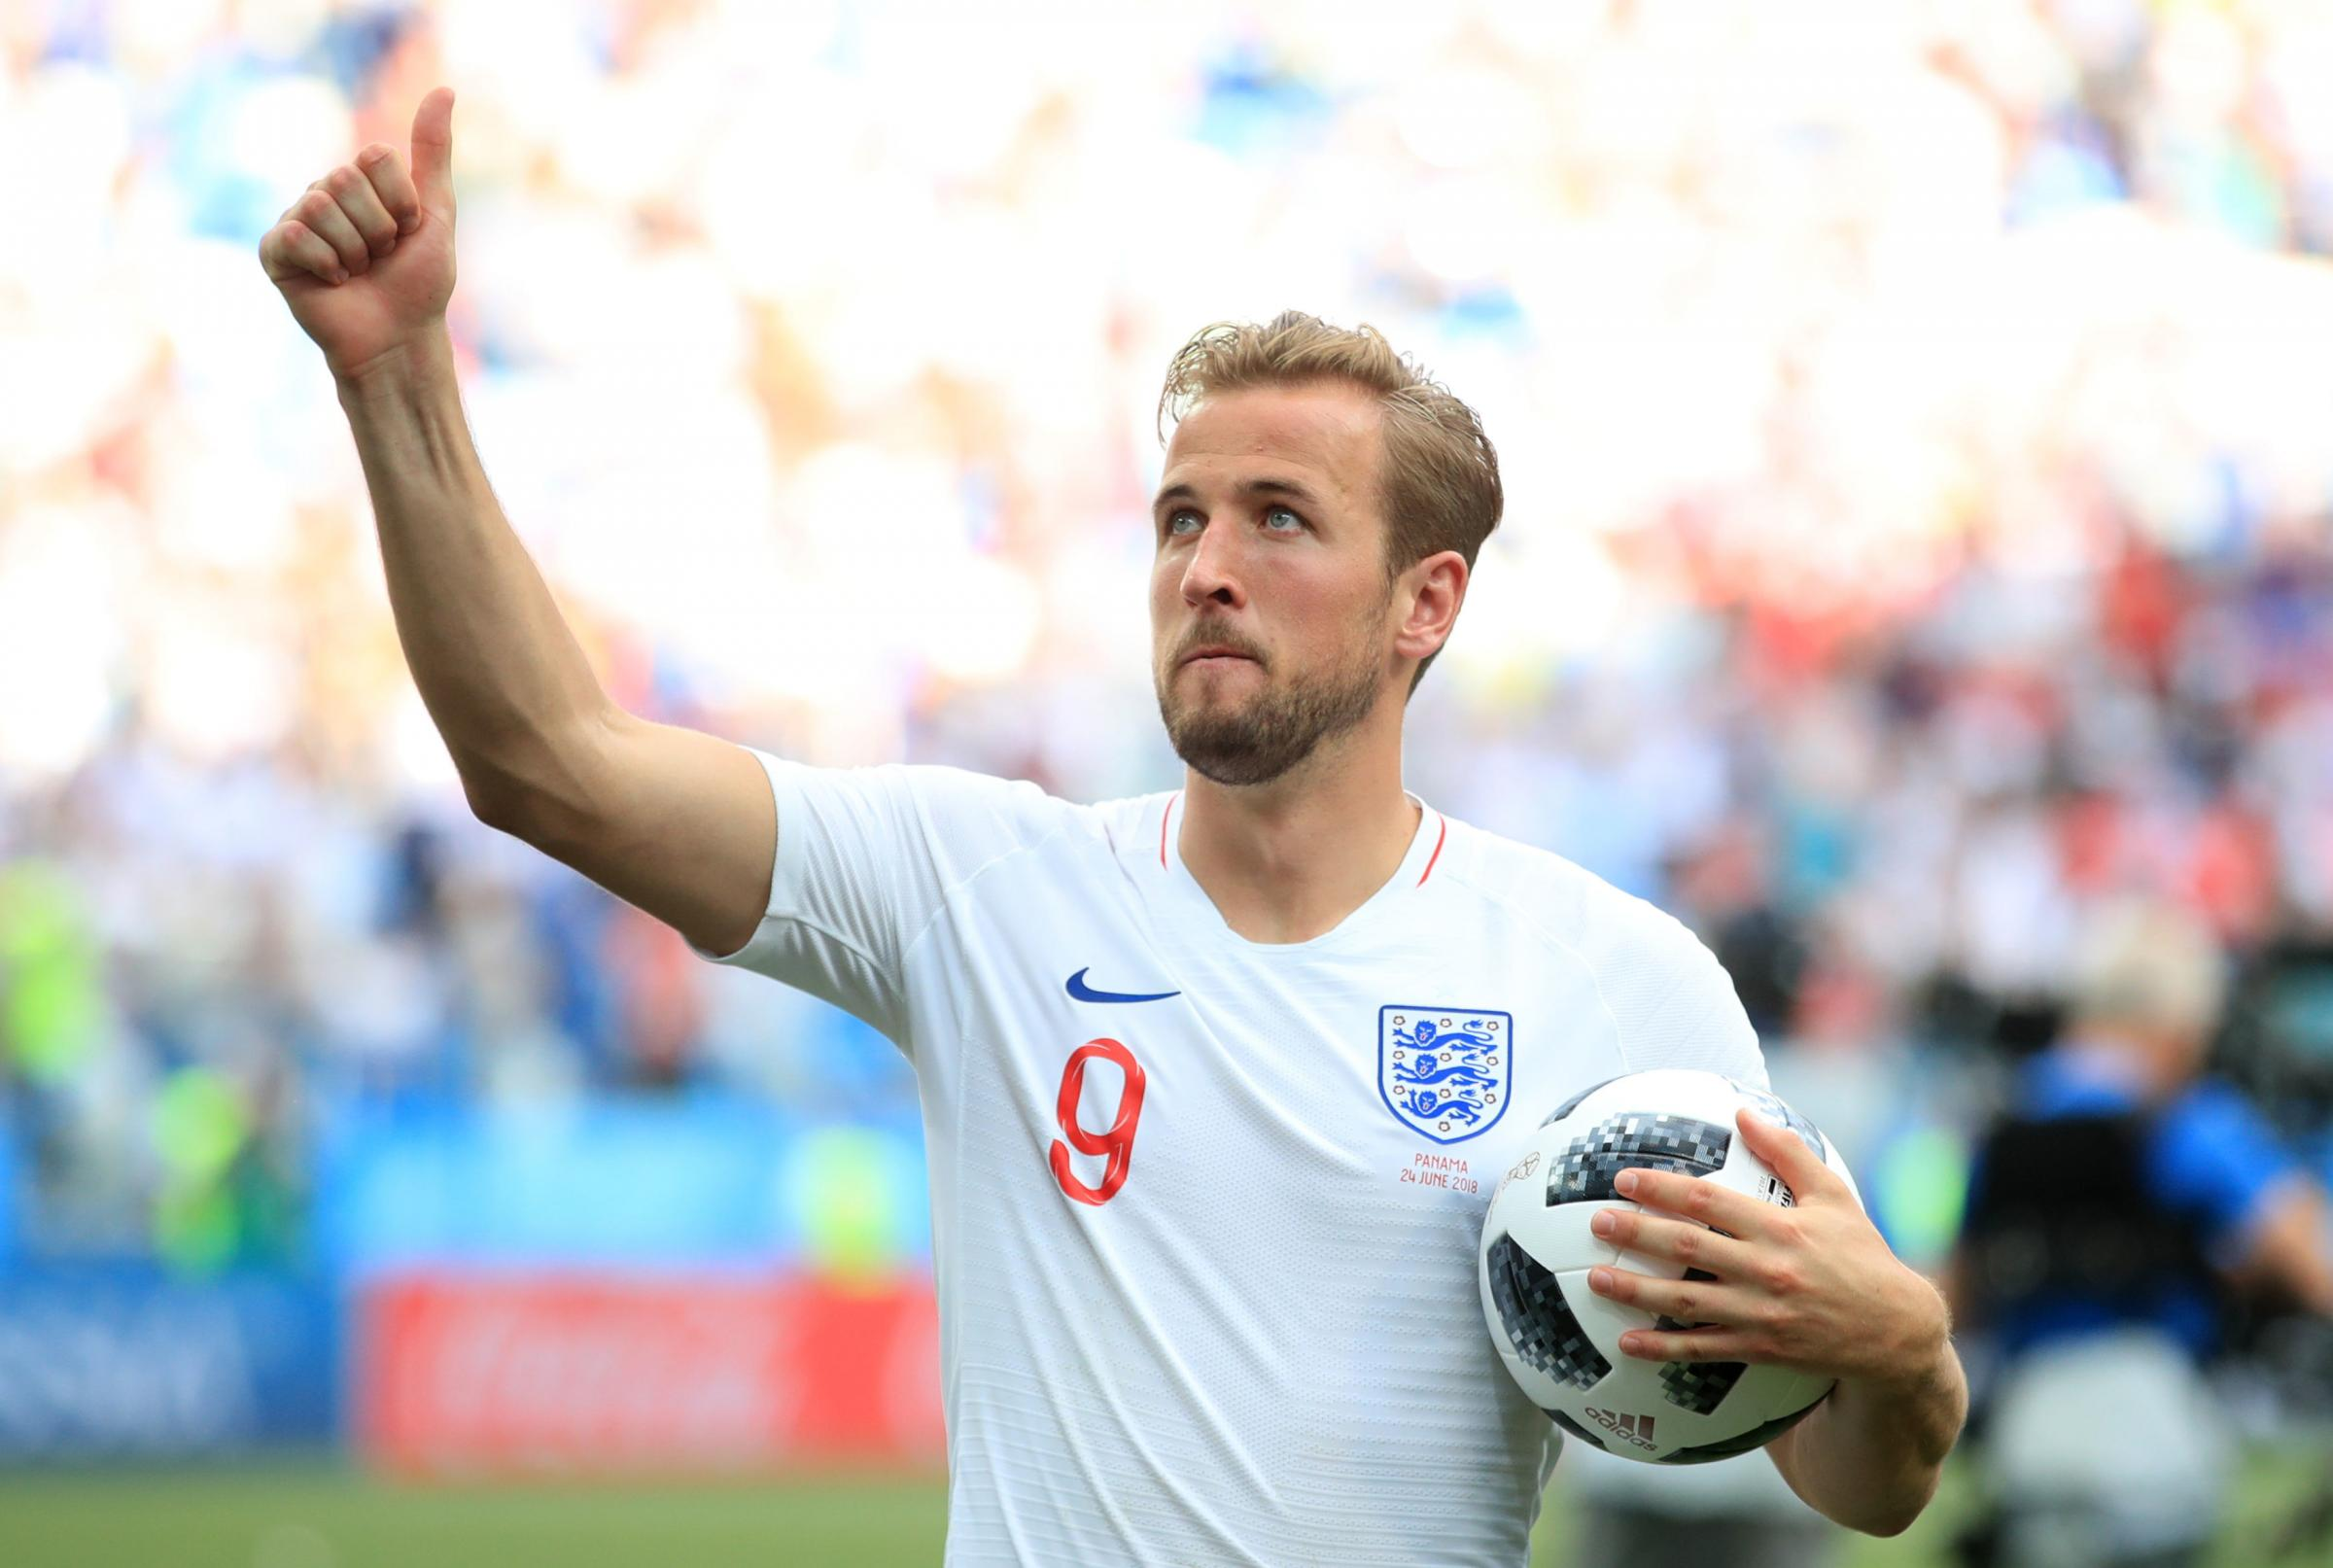 England's Harry Kane celebrates with the match ball after the final whistle during the FIFA World Cup Group G match at the Nizhny Novgorod Stadium. PRESS ASSOCIATION Photo. Picture date: Sunday June 24, 2018. See PA story WORLDCUP England. Photo credi